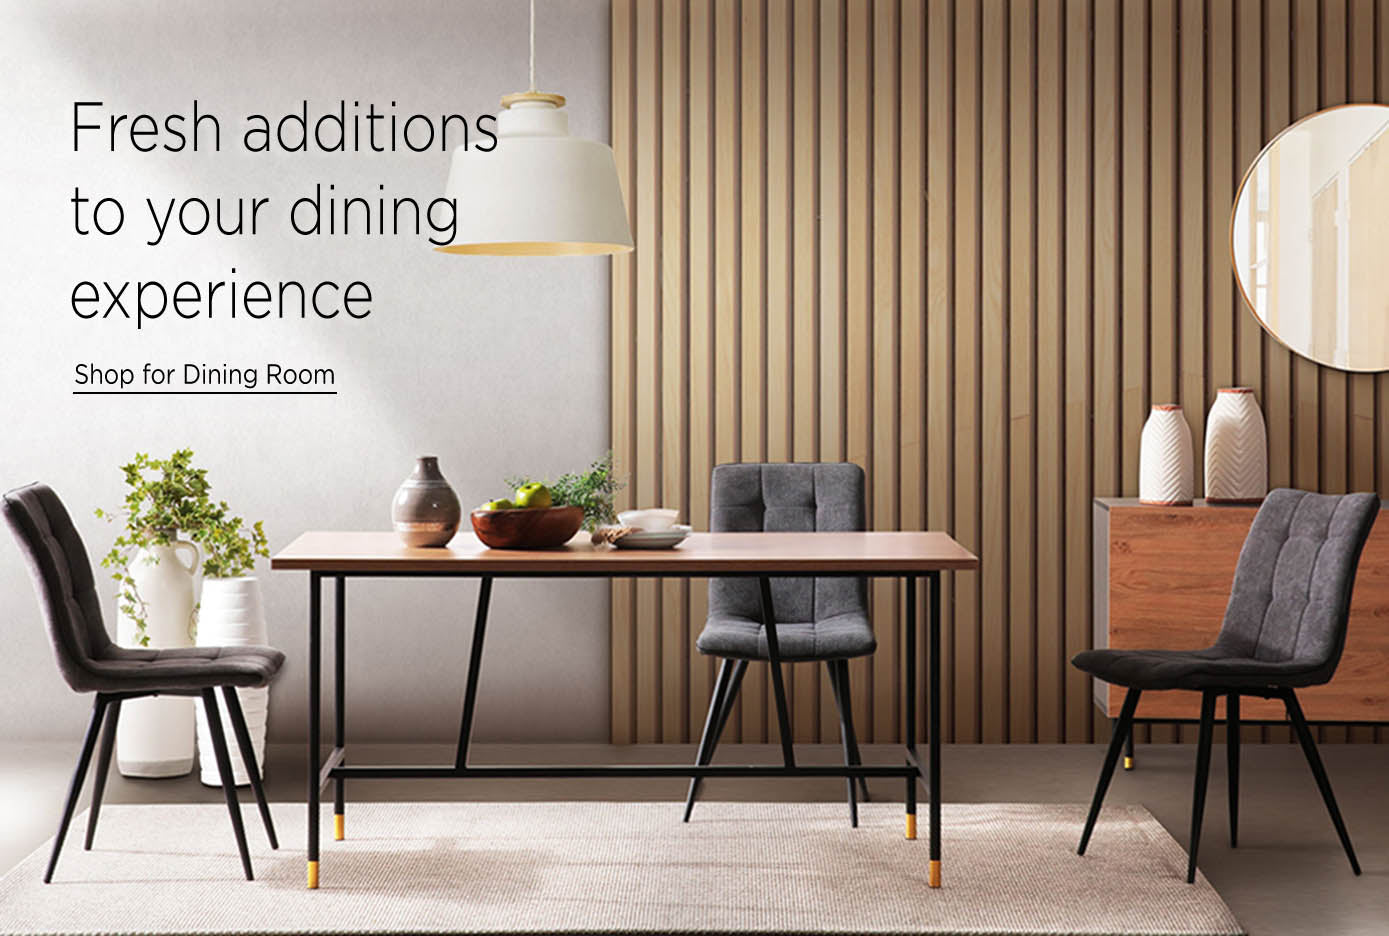 10-Wooden_dining_table_with_chairs_and_bench_in_front_of_wooden_accent_wall